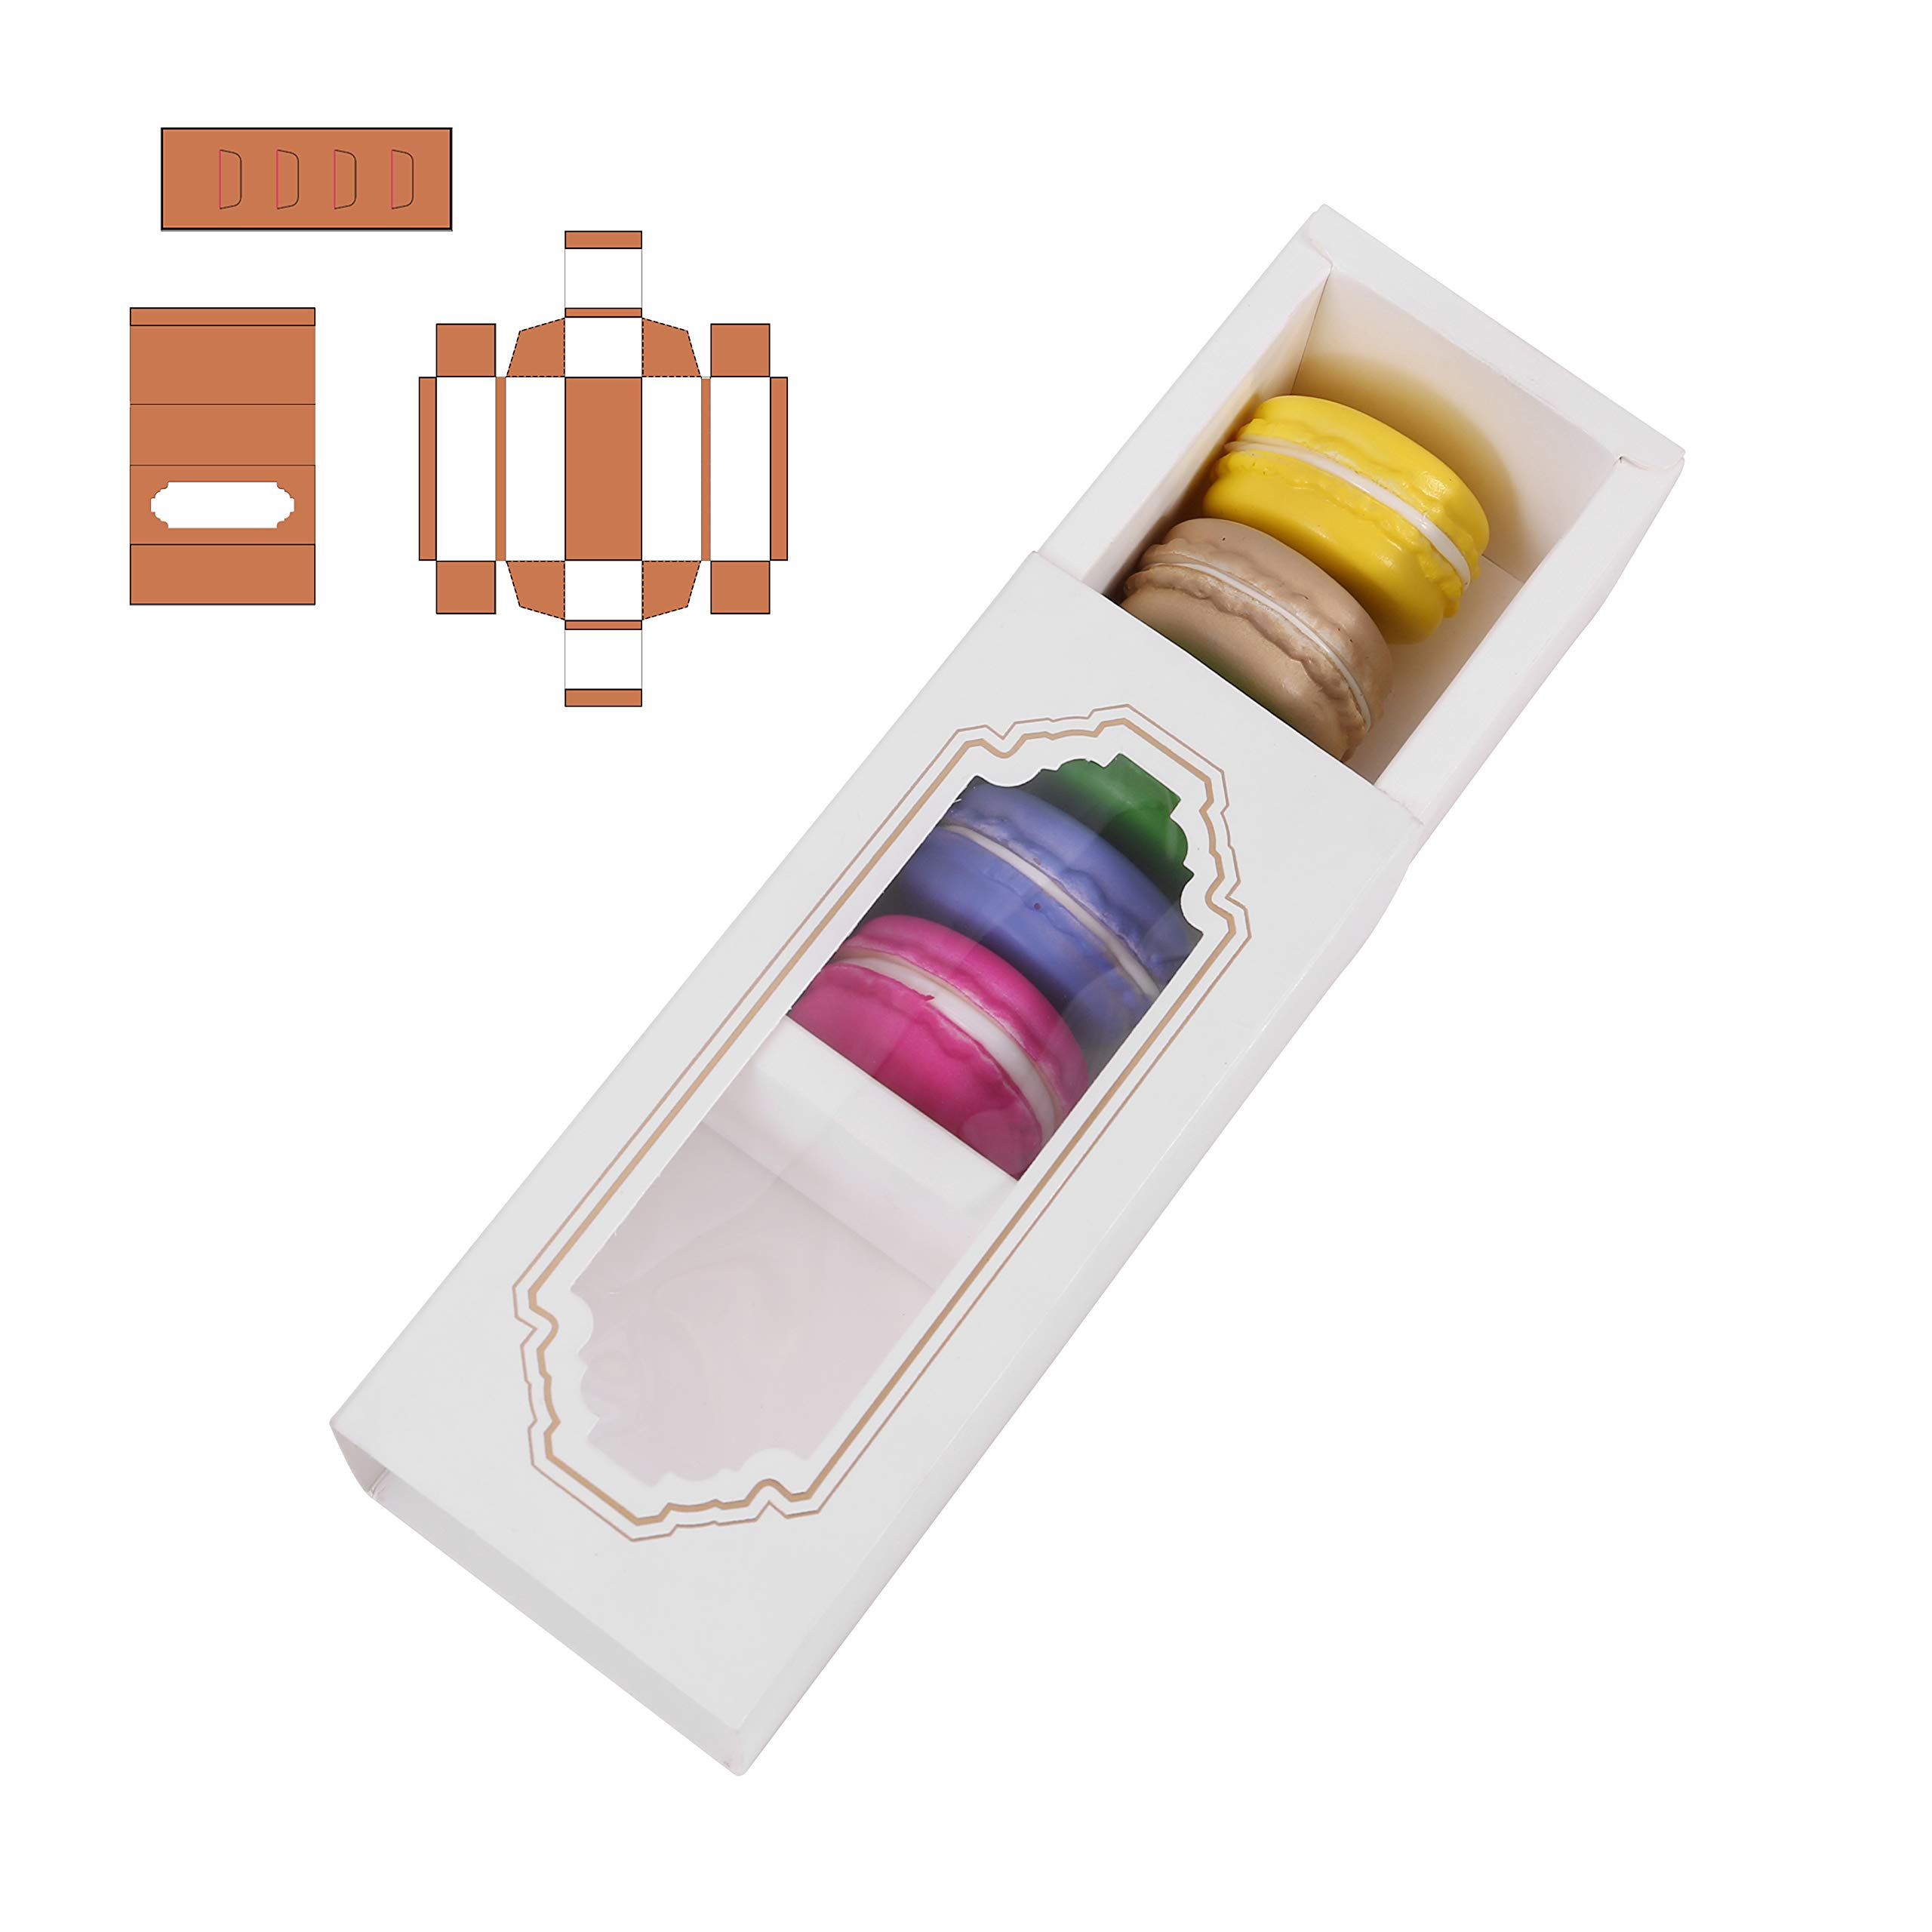 MCART Macaron Boxes for 5 to 6 [20 Pack] Macarons Packaging Boxes